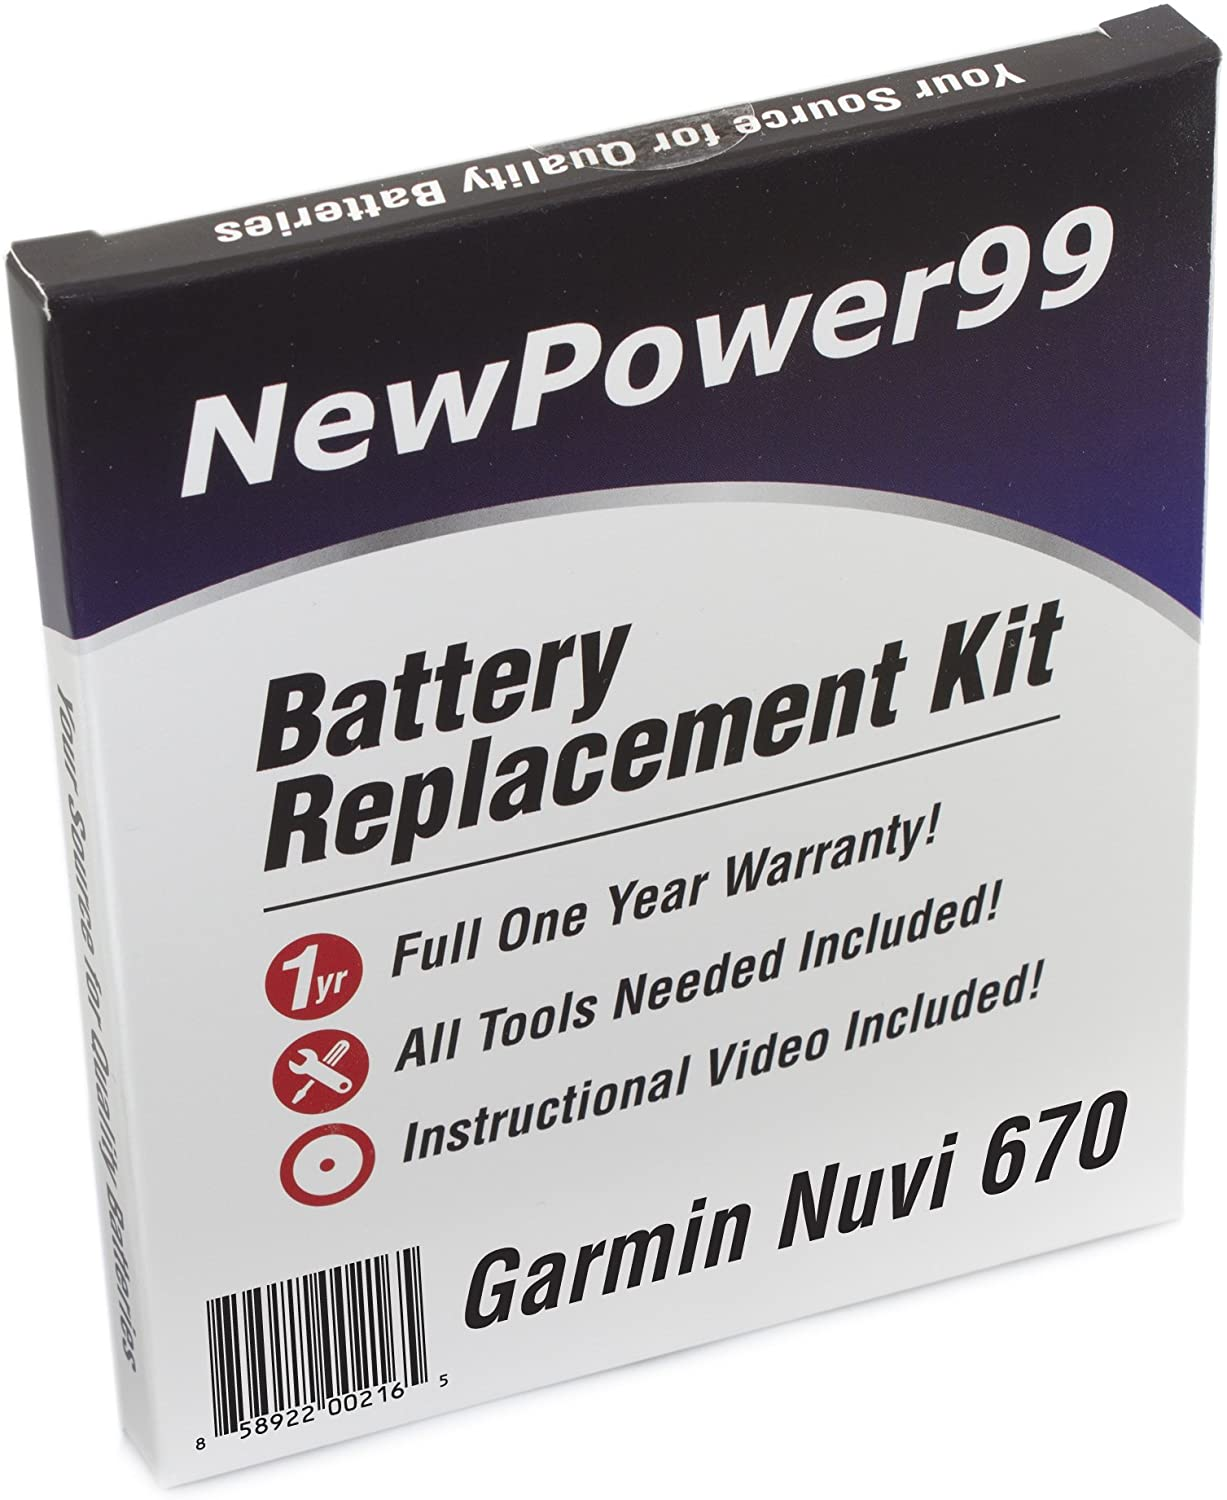 NewPower99 Battery Replacement Kit with Battery, Video Instructions and Tools for Garmin Nuvi 670